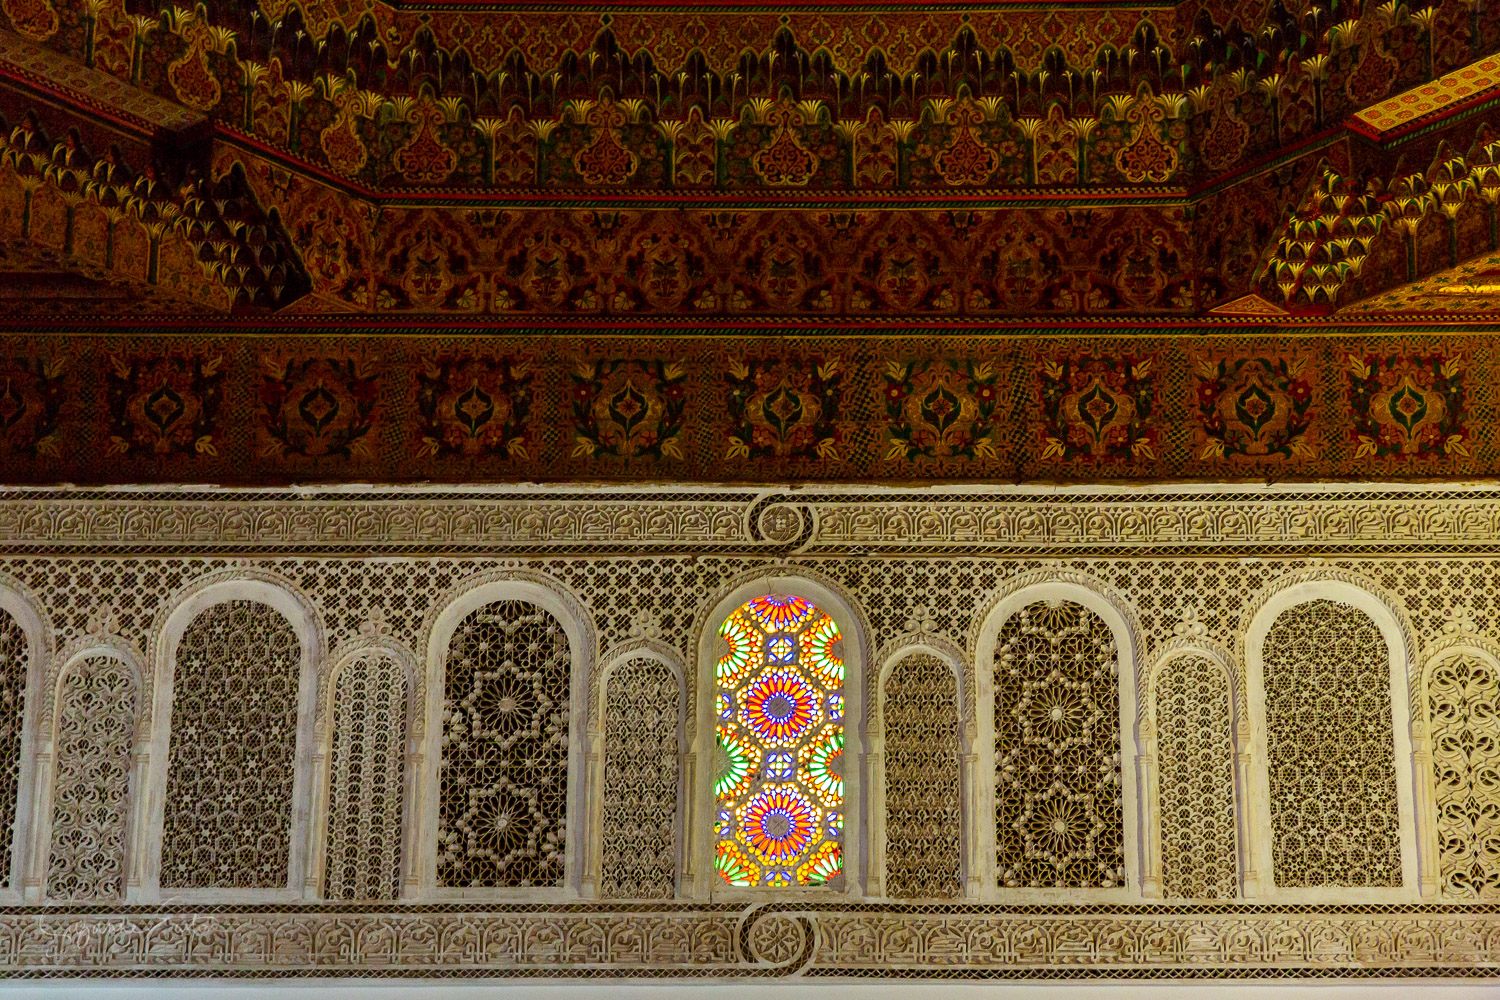 Stained glass and plasterwork carvings in Palais Bahia in Marrakech